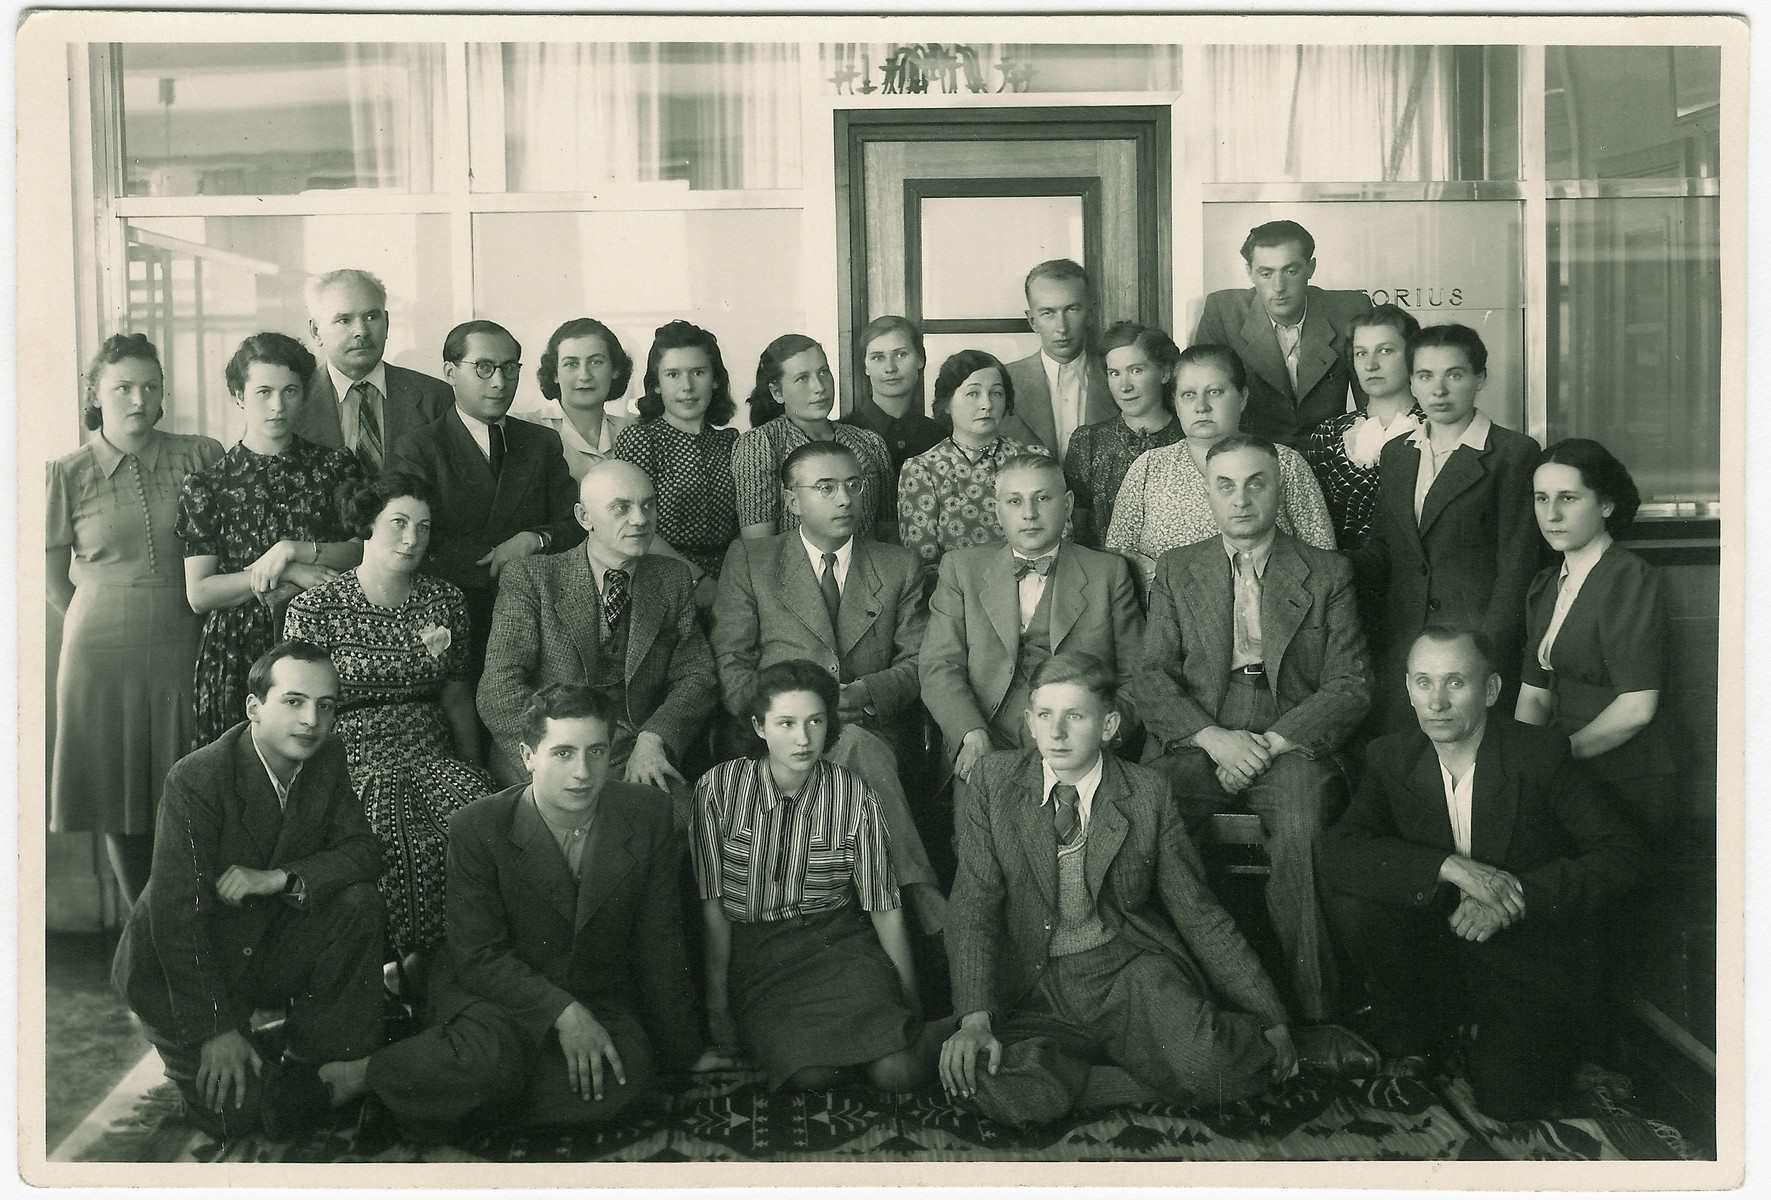 Group portrait of the staff of the Lietuvos Lloydas insurance company.  Among those pictured are Dmitri Gelpern (first row, left), Aleksandras Valaitis (middle row, second from left), Moisei Kopelman (middle row, third from left), Mikhail Fratkin (middle row, fourth from left), and Olga Zirickiene (back row, between Kopelman and Fratkin).  Dmitri Gelpern later became a leader of the Communist underground in the ghetto; Moisei Kopelman became ghetto chief of police, and Aleksandras Valaitis became a rescuer.